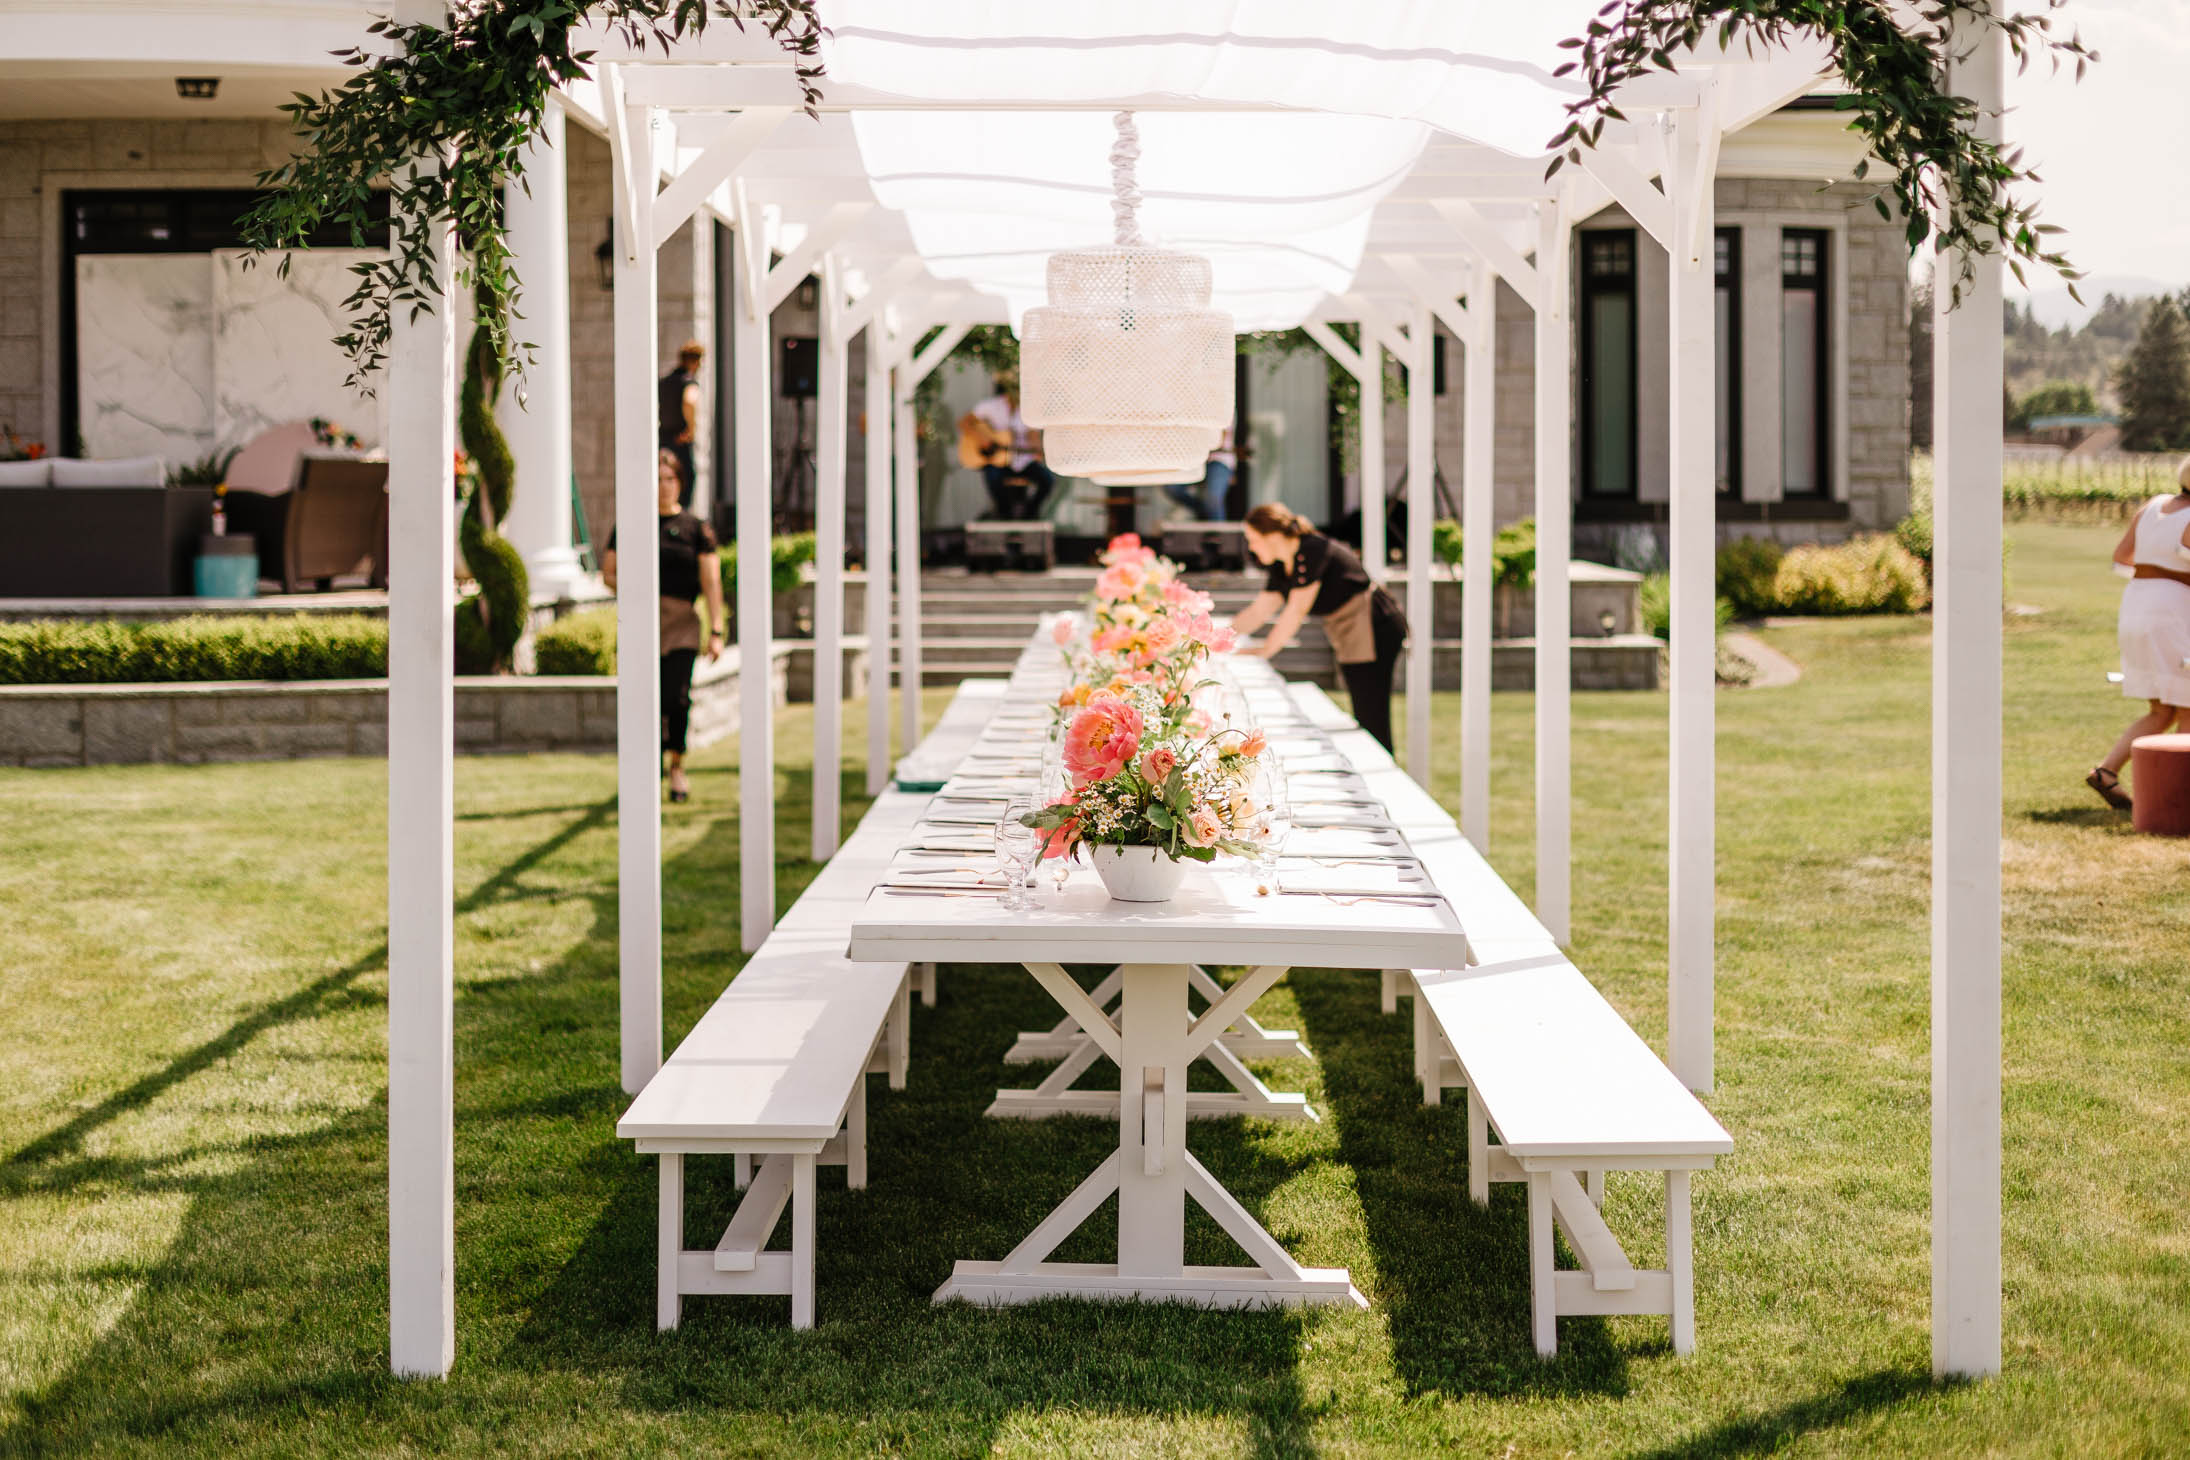 New from Refined Furniture!! - This solid wood white pergola is now ready for renting! We built it custom for a a Mamas for Mamas fundraiser, put on by Jillian Harris. It looks beautiful as-is, but can also be dressed up in any way you wish to fit the decor of your wedding or event.It measures 8 ft wide and then continues on in 8' sections. In this photo we put 5 sections together to make it 40', but it can be rented in 8' increments, up to the maximum of 40'.